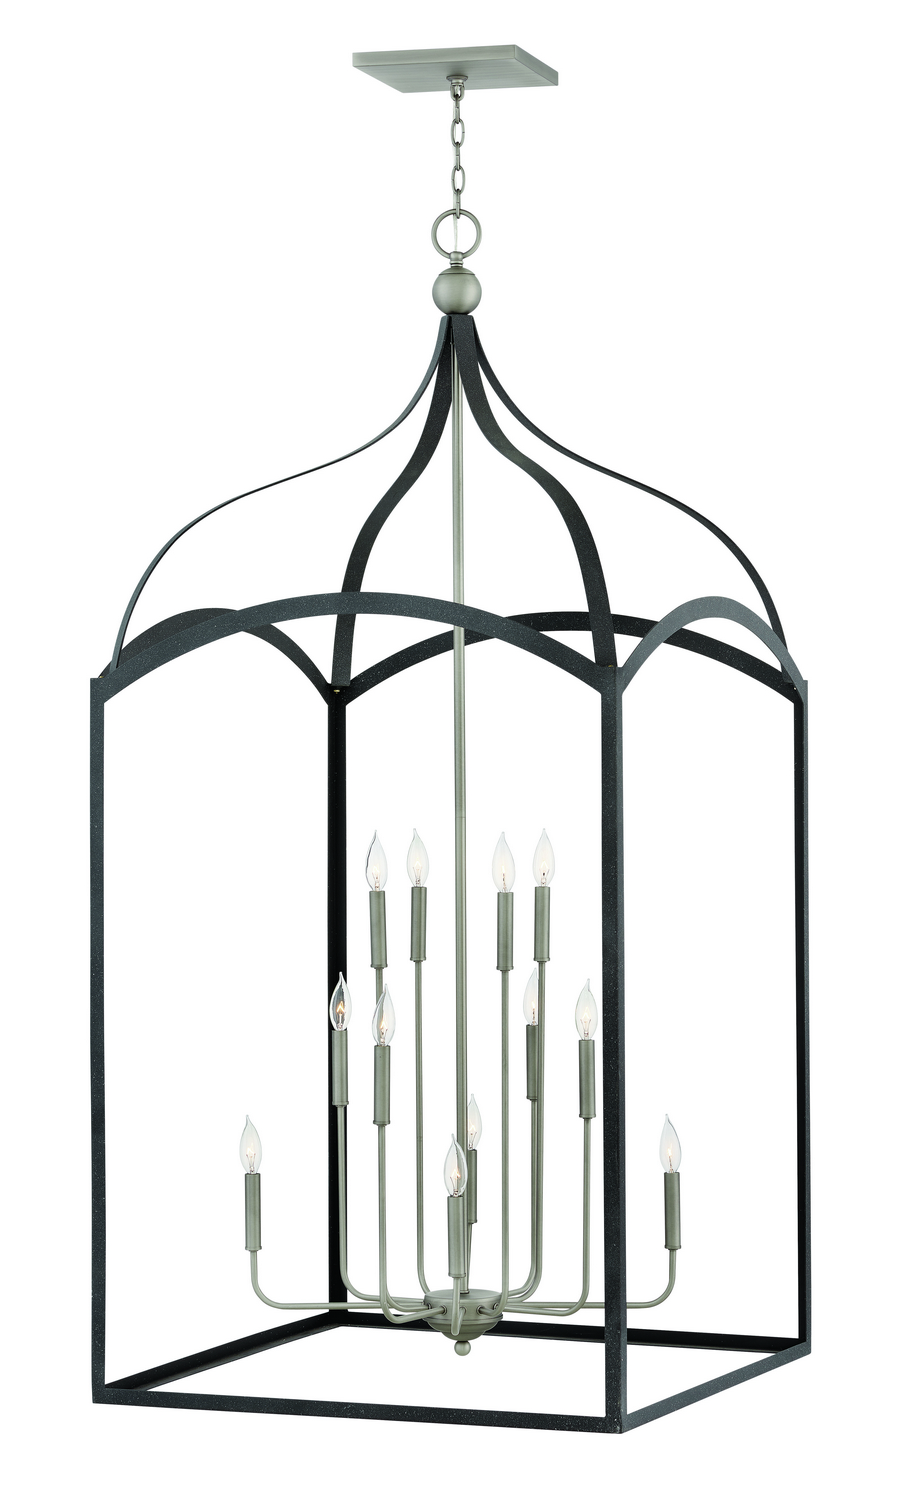 12 Light Chandelier from the Clarendon collection by Hinkley 3419DZ